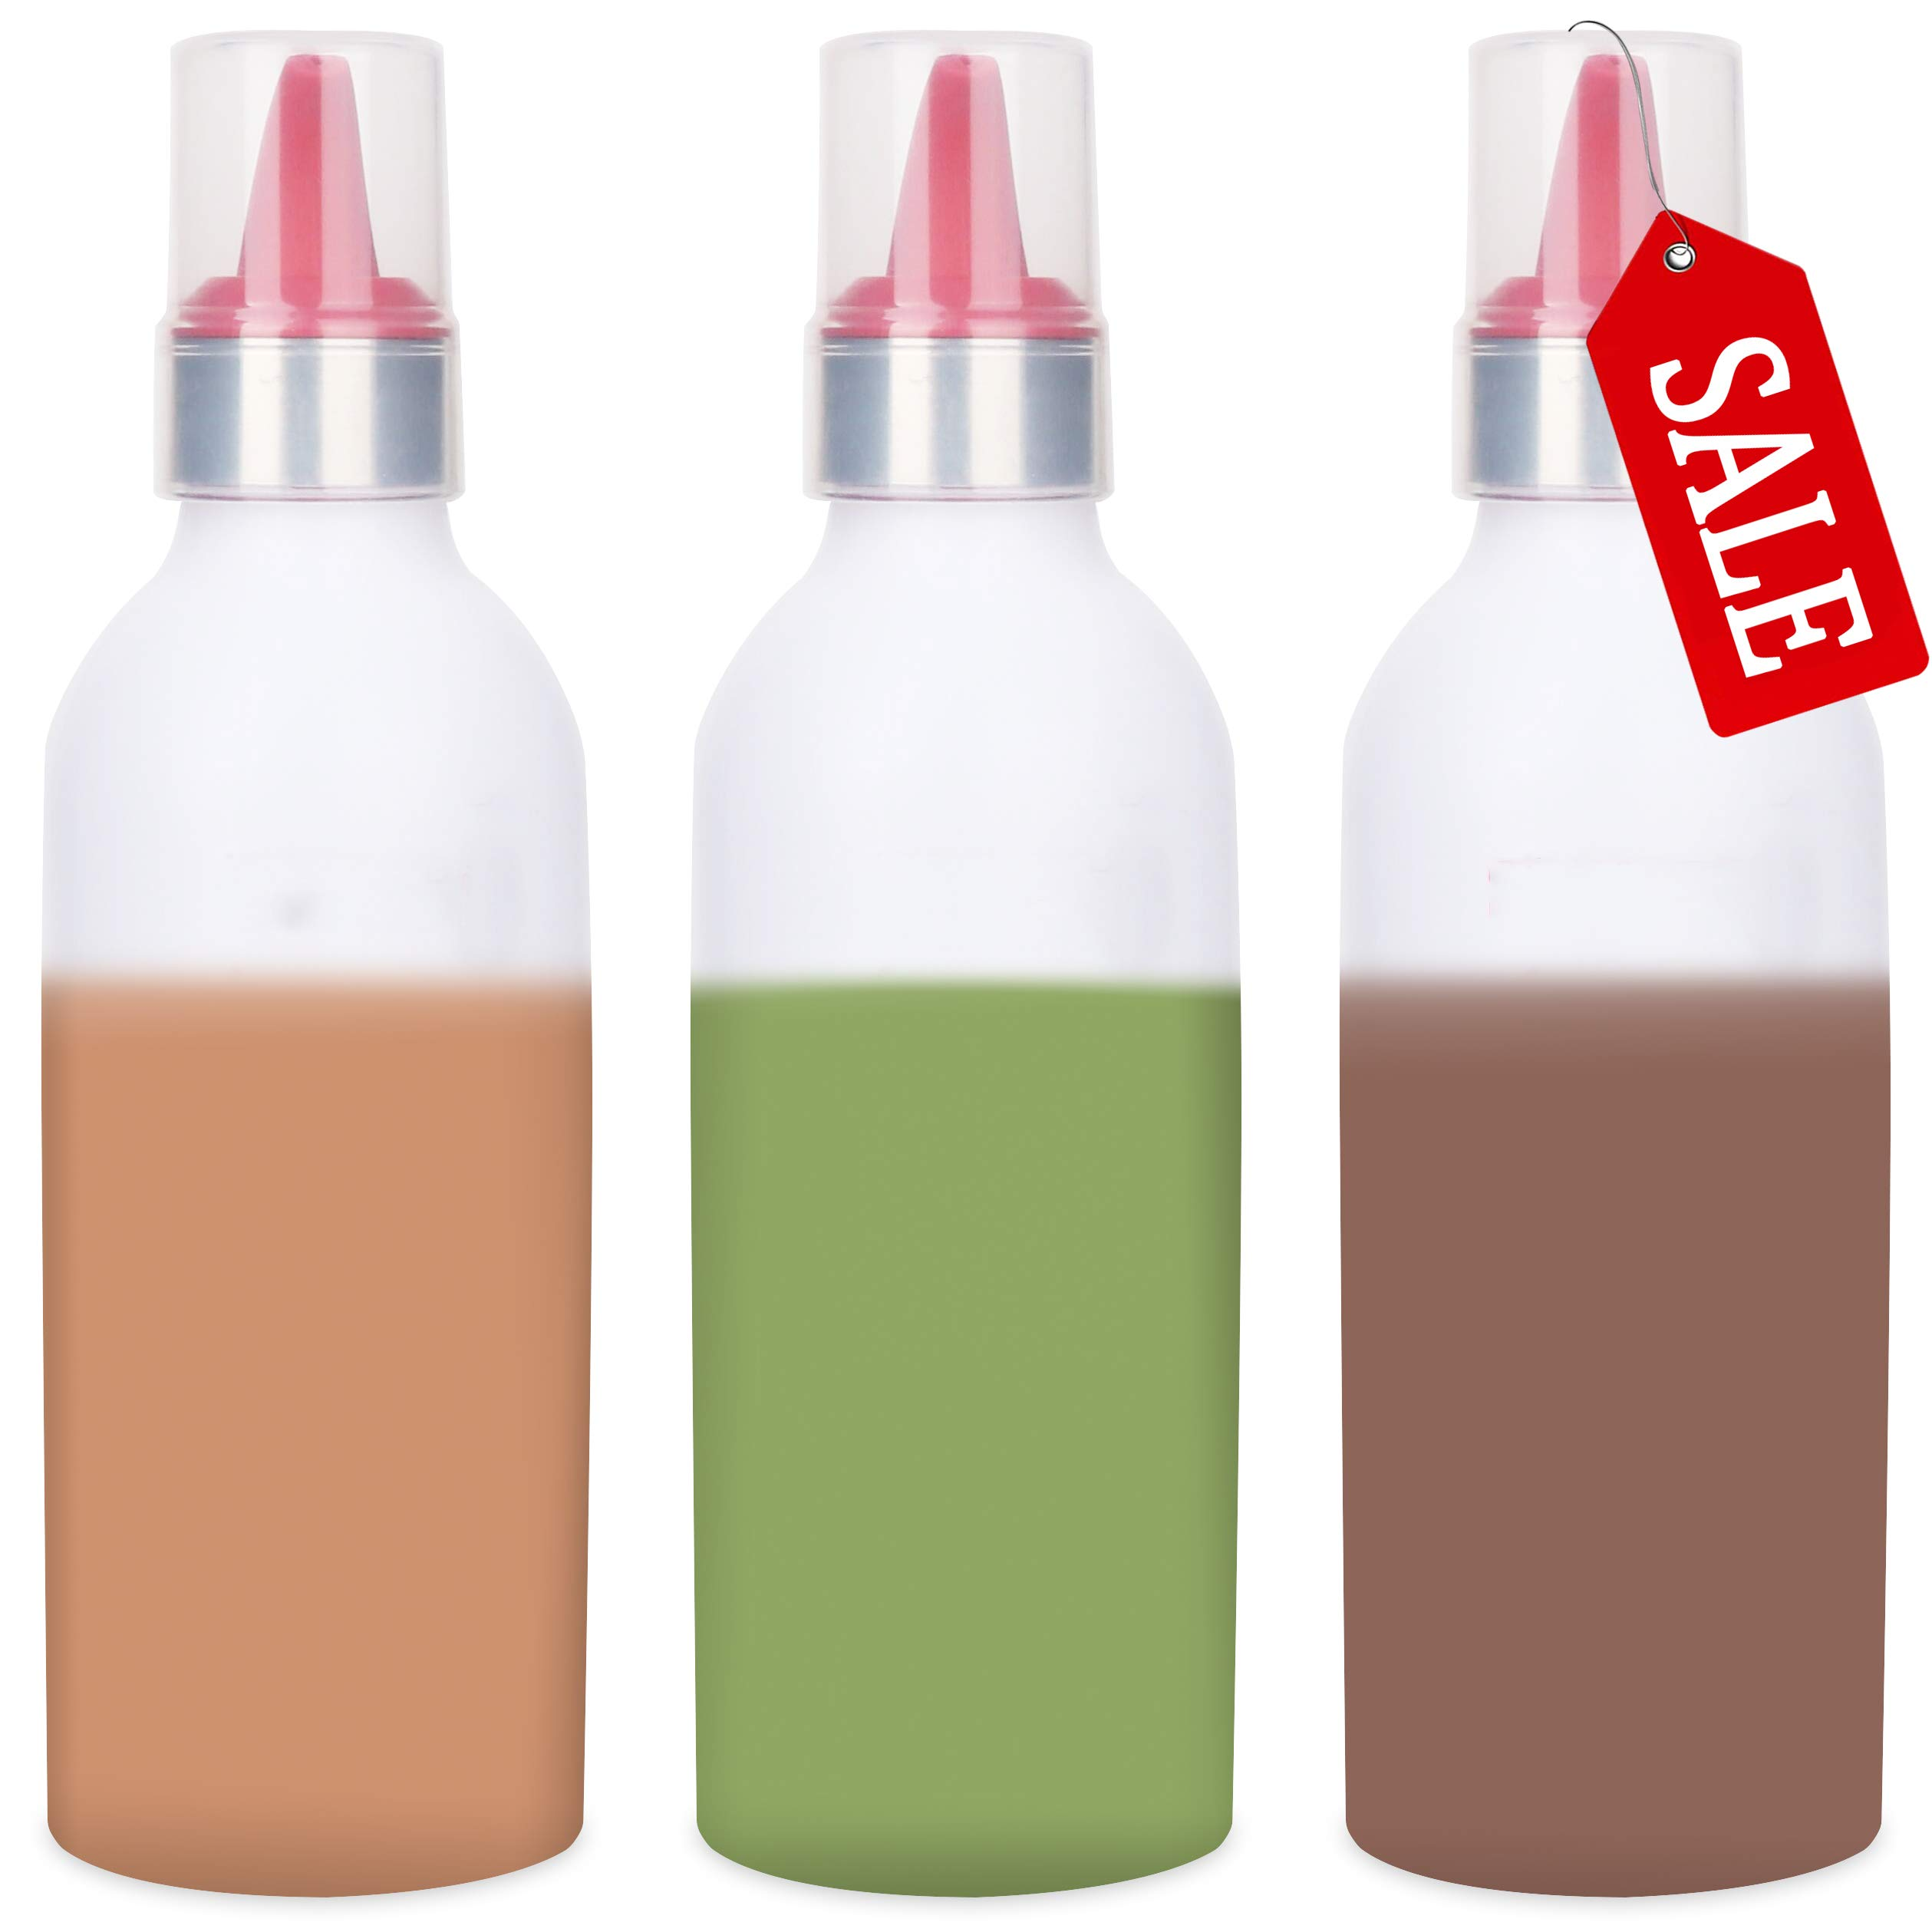 SUJUDE Plastic Squeeze Bottles for Sauces with Lids, Kitchen Squeeze Bottle for BBQ Sauce, Condiments, Salad Dressings and Ketchup, No BPA, FDA Approved, 16 Ouce Pack of 3 by SUJUDE